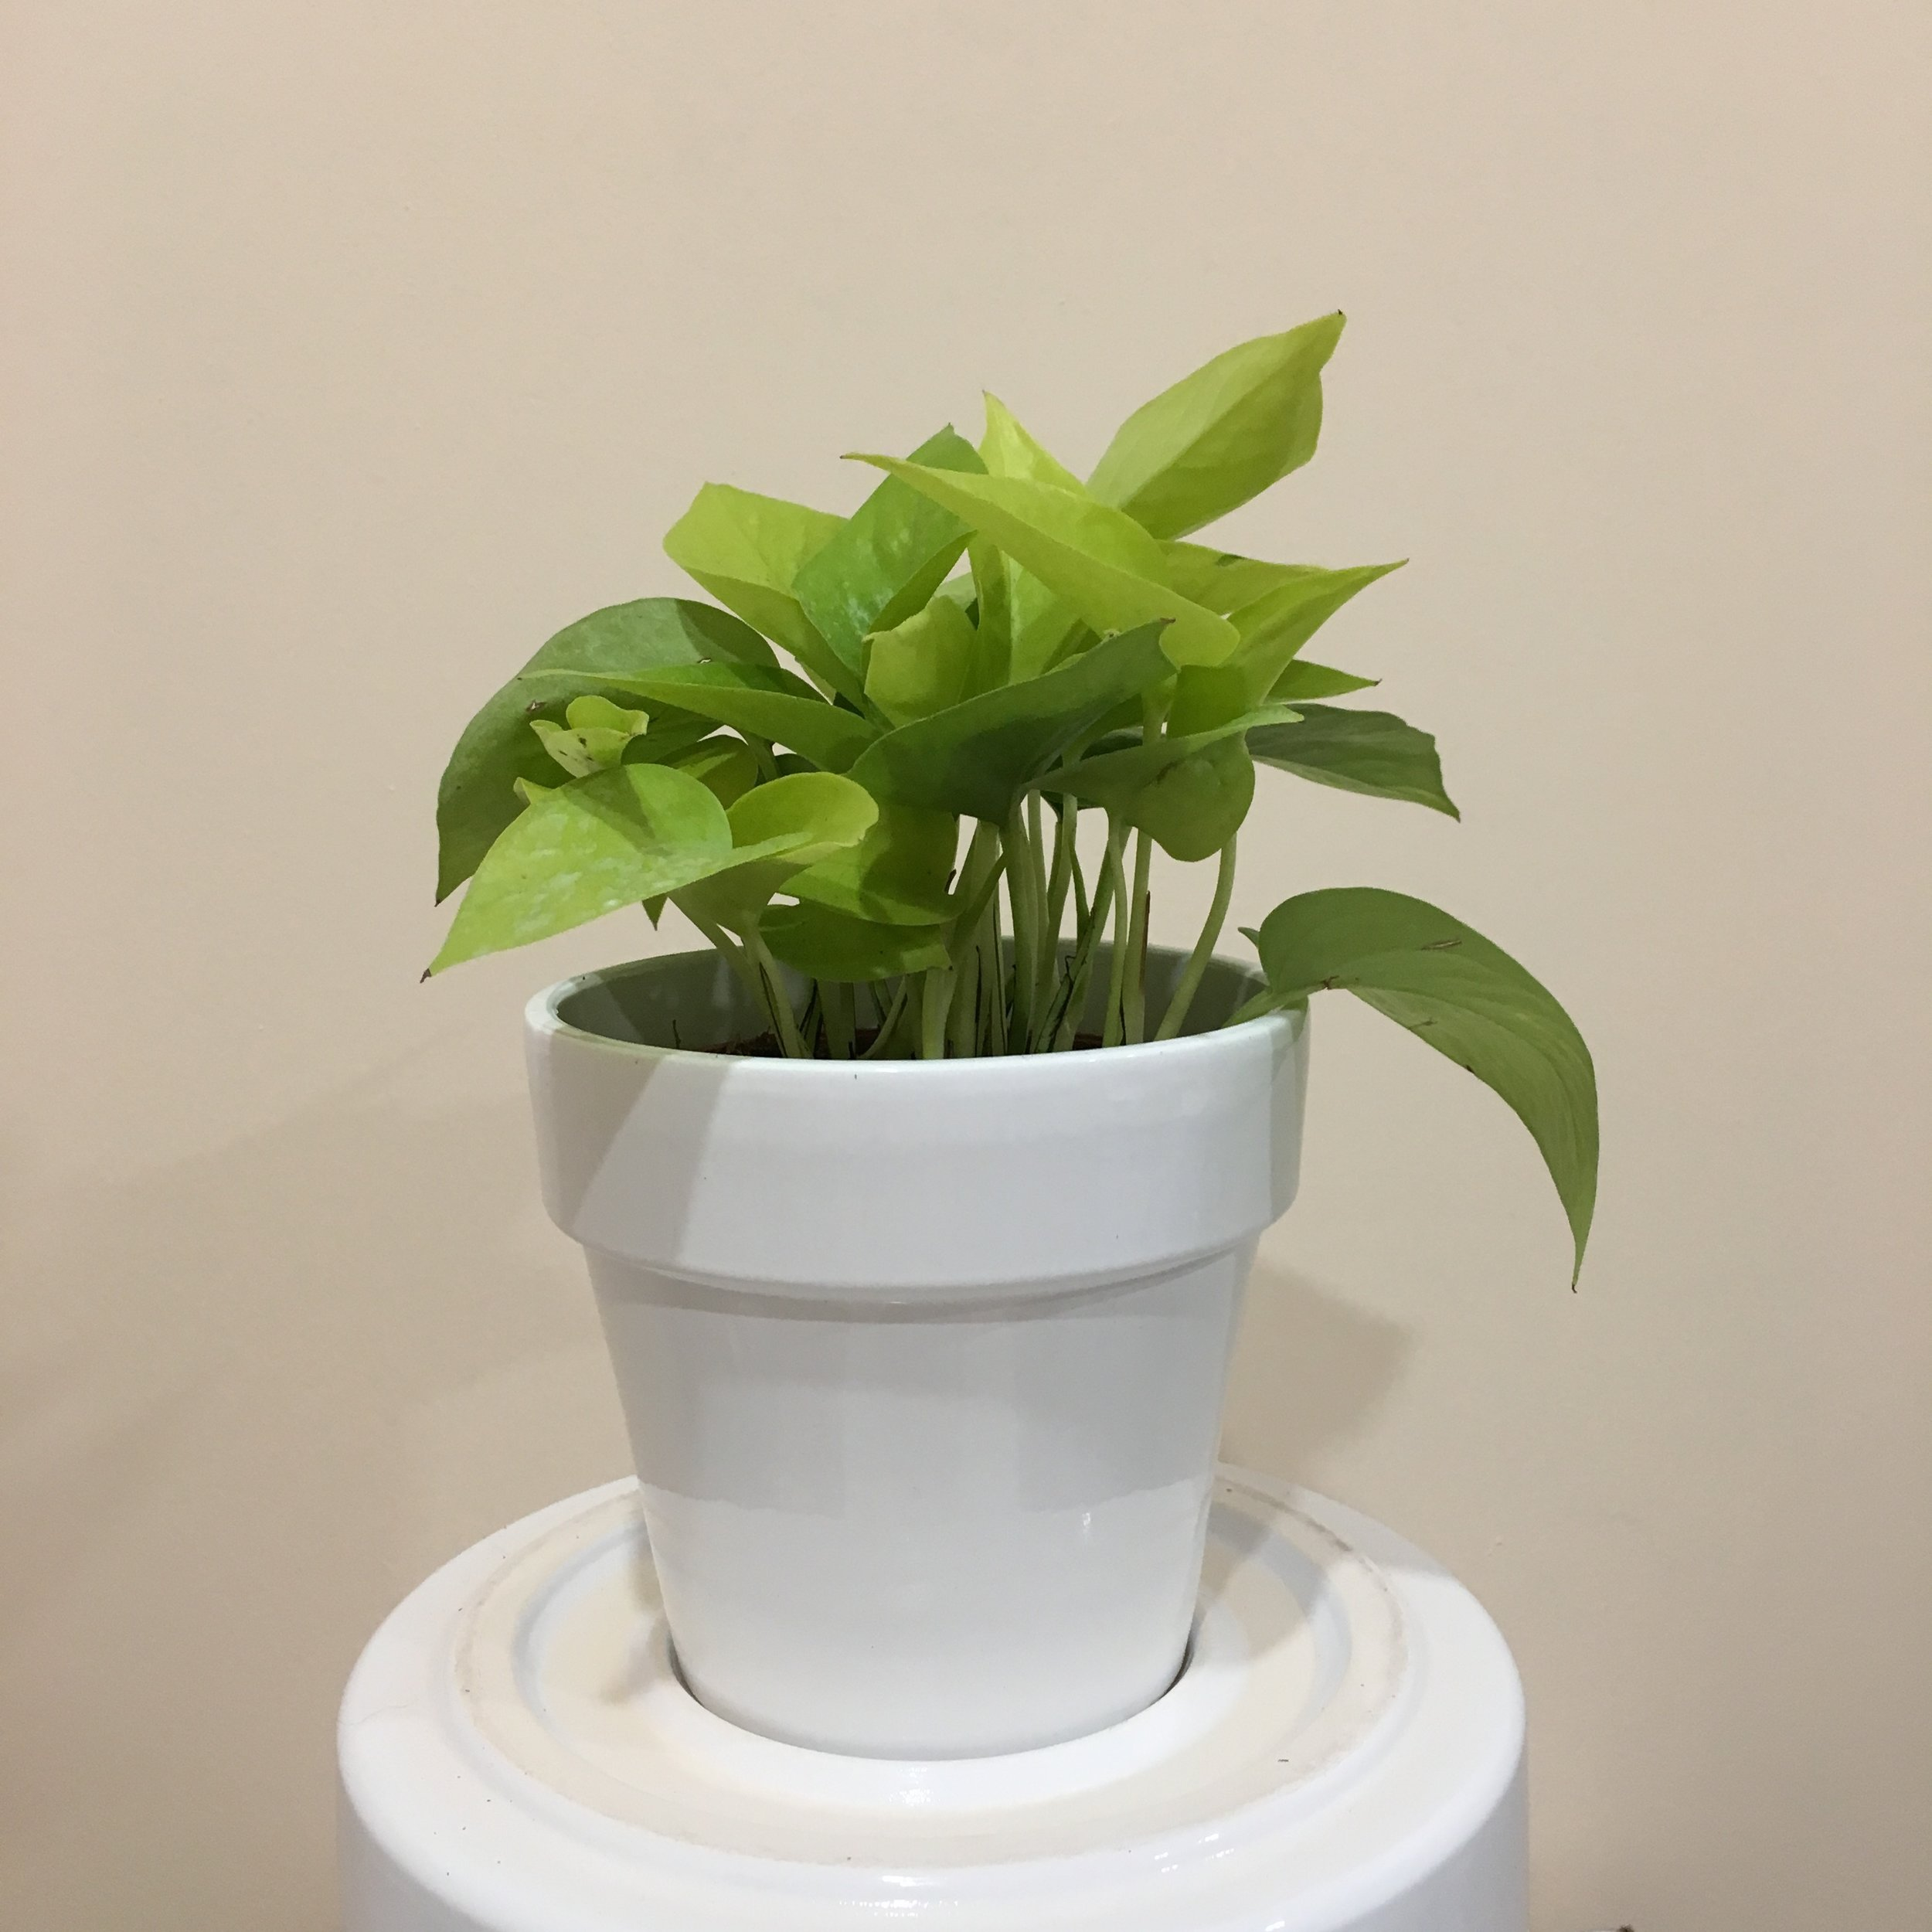 Pothos Neon - Light - Moderate, indirect light.Water - The soil should be kept moist, allowing it to dry a bit in between watering. Watering can be done once a week to every ten days.Fun Fact - The foliage of a neon pothos is sure to brighten any space. This plant is also great for beginners.